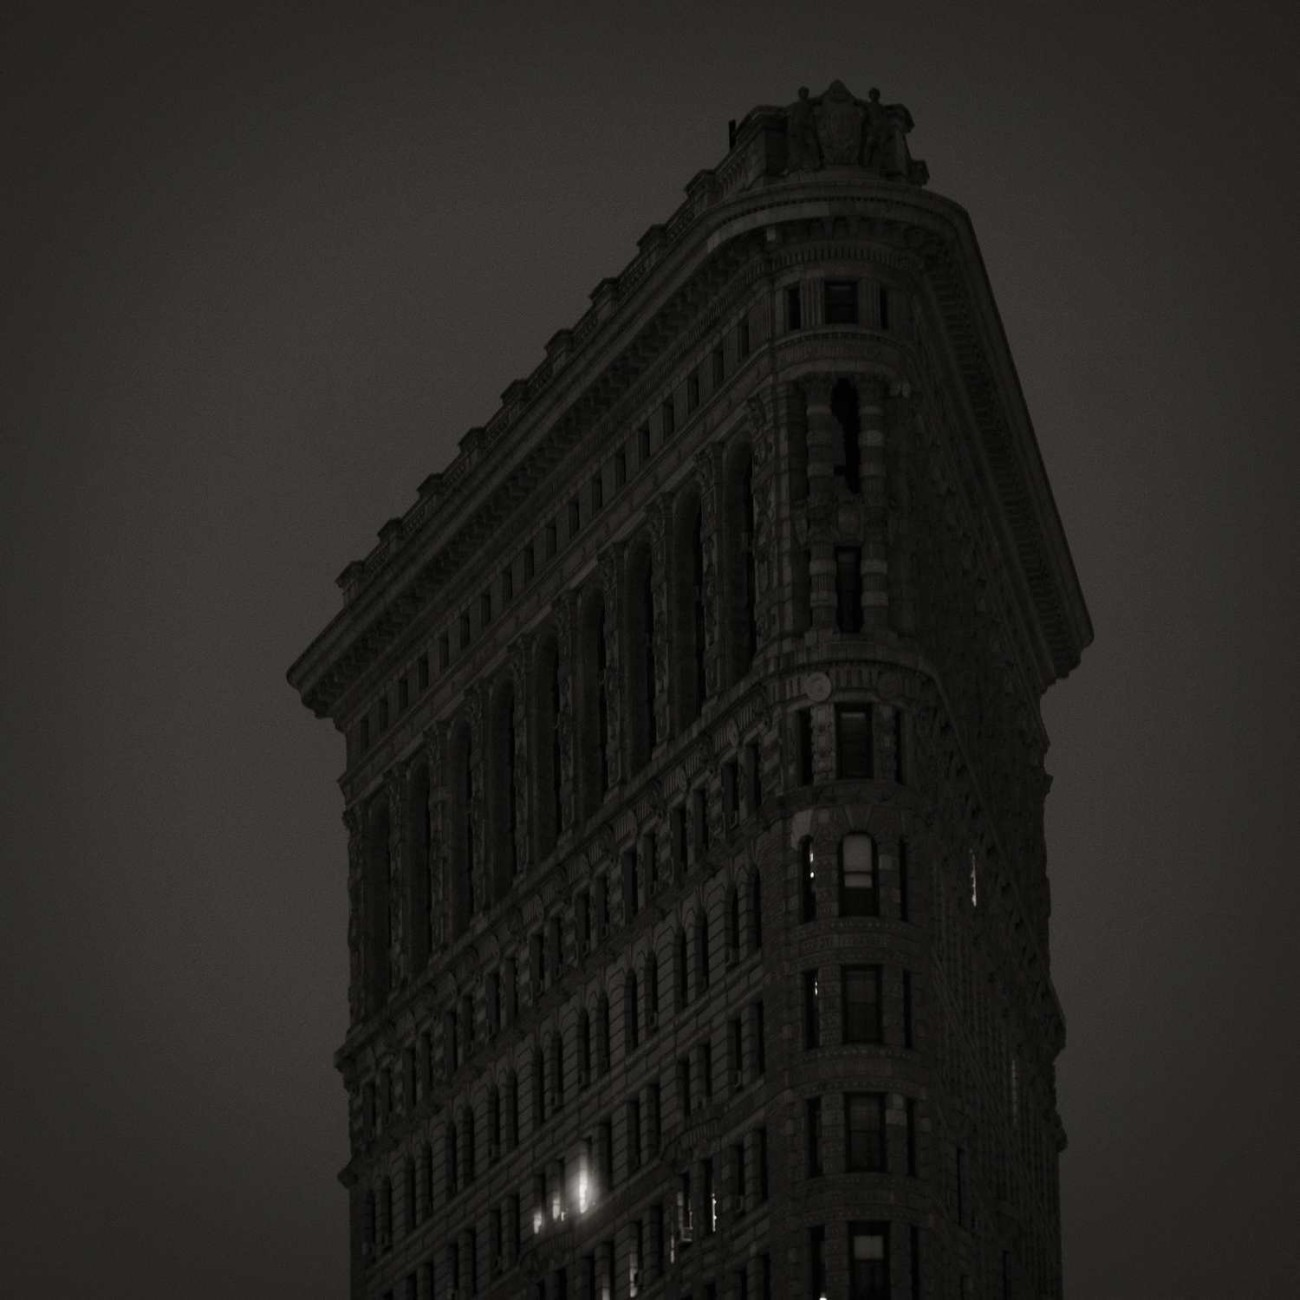 Late night lights in the Flatiron, New York, 2015